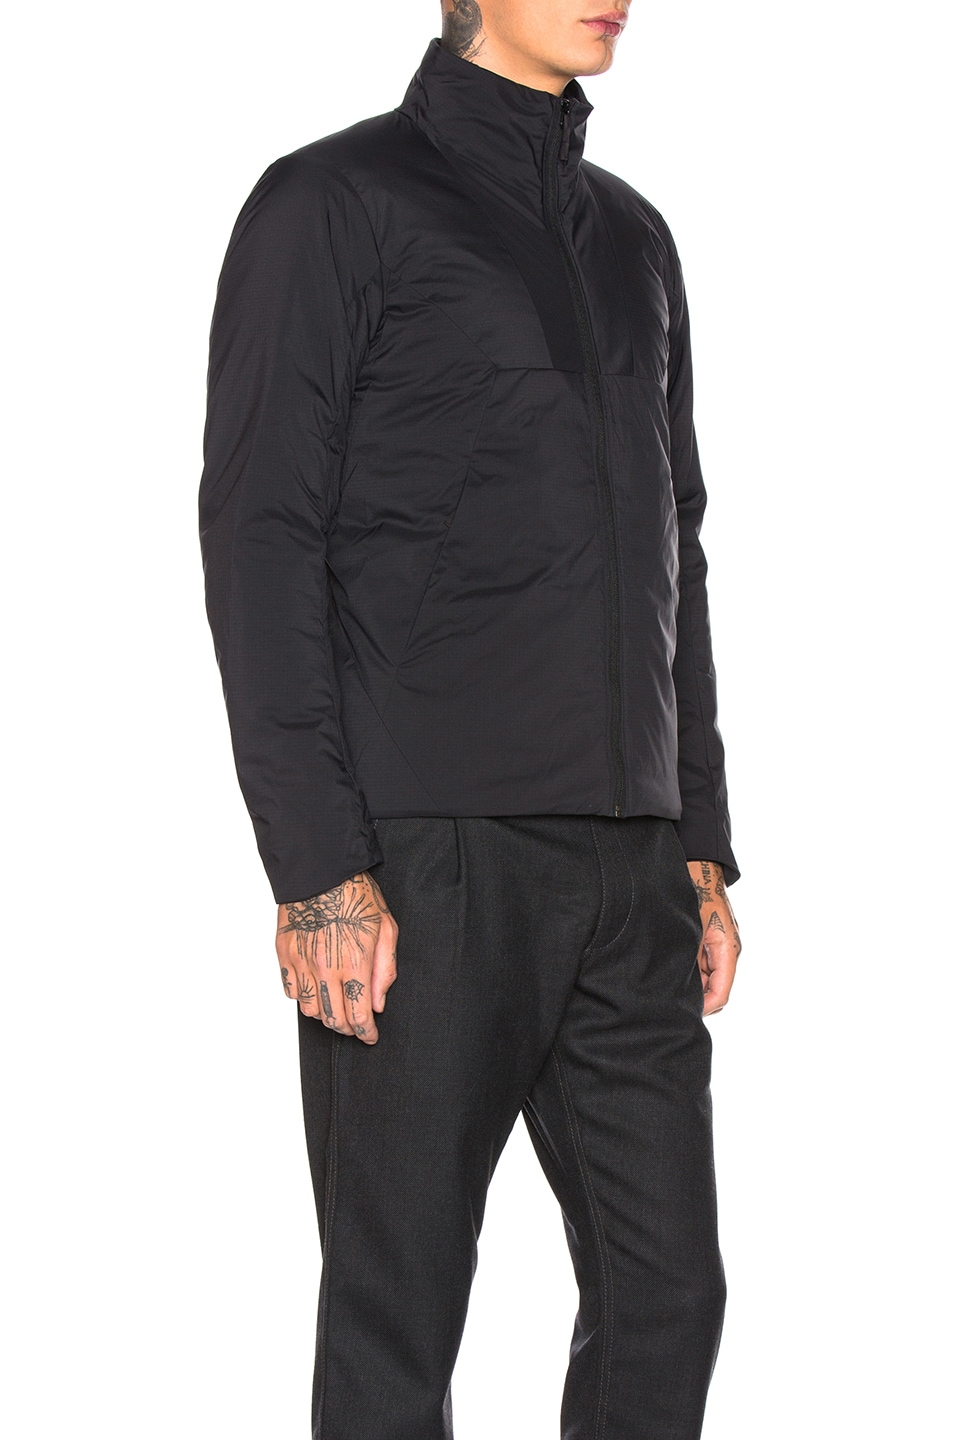 Image 3 of Arc'teryx Veilance Mionn Is Jacket in Black